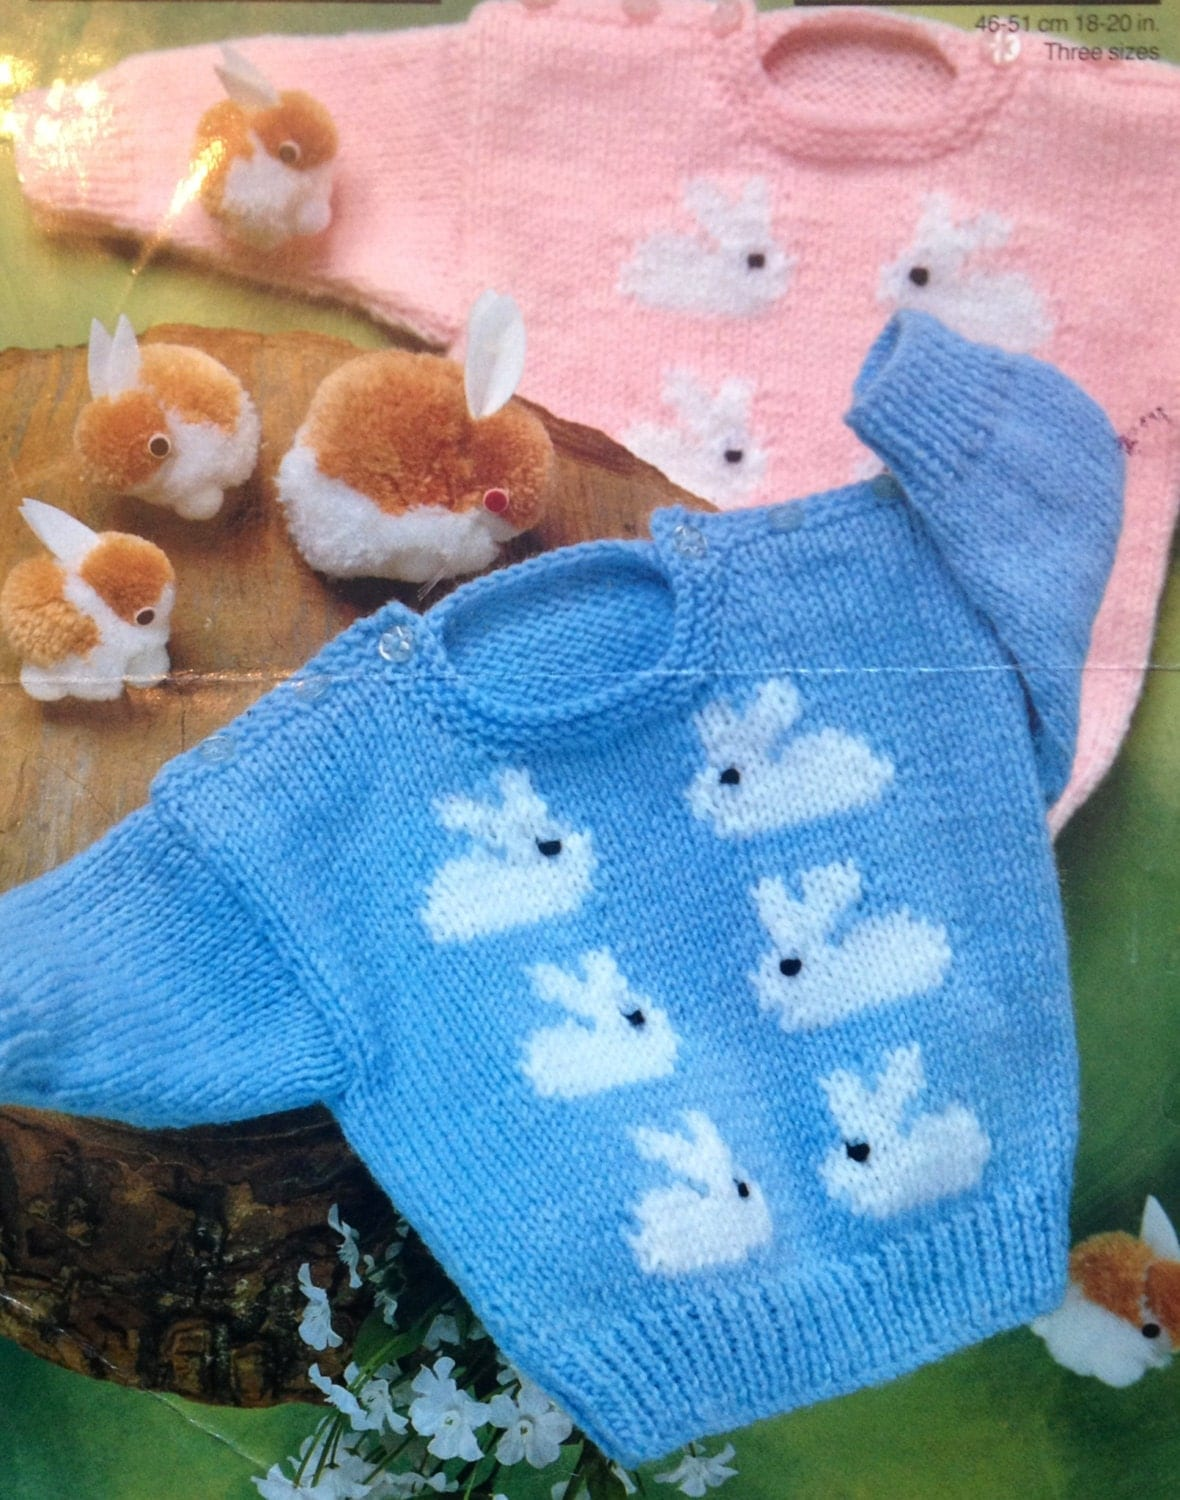 Bunny Knitting Pattern : baby knitting pattern cute bunny rabbit jumpers in size 18-20